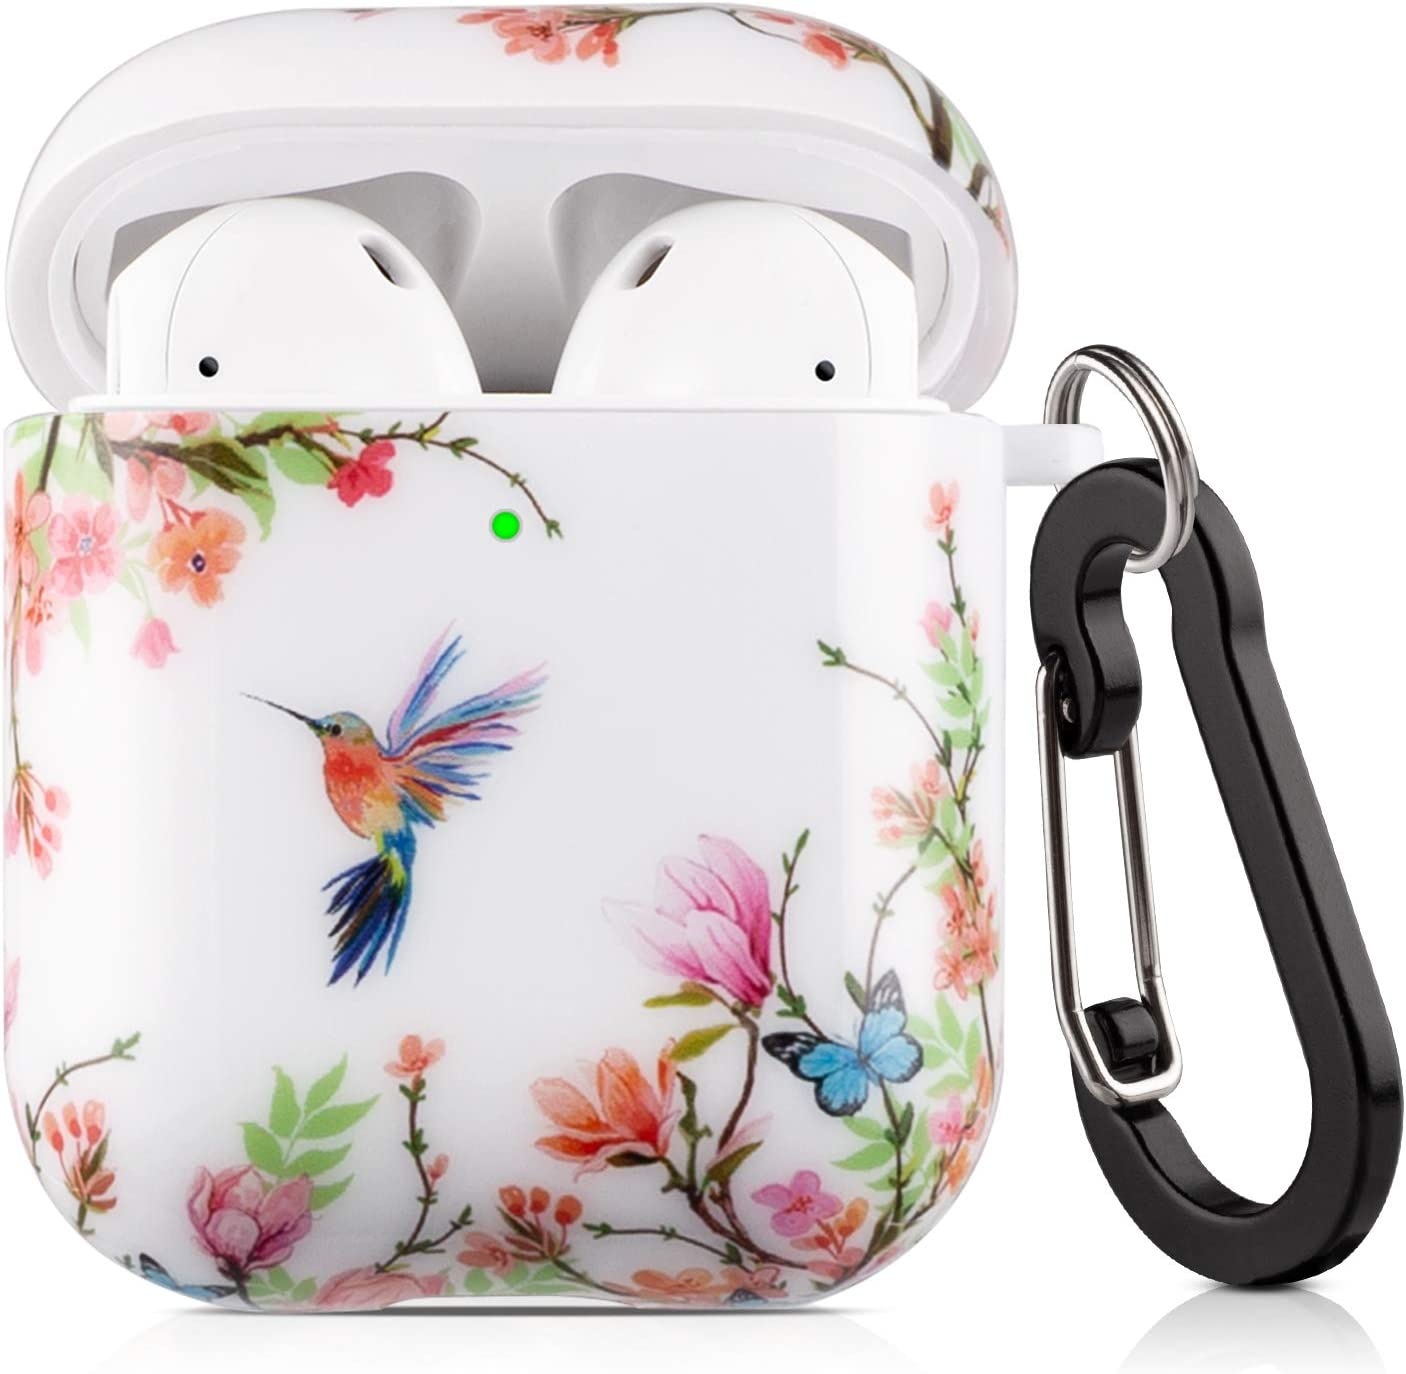 Lokigo Airpods Protective Case Cover Hummingbird Compatible for Apple Airpods Charging Case 2&1, Hard Case Kit with Keychain, a Great Gift for Girls Women Men - Front LED Visible (Flowers Hummingbird)